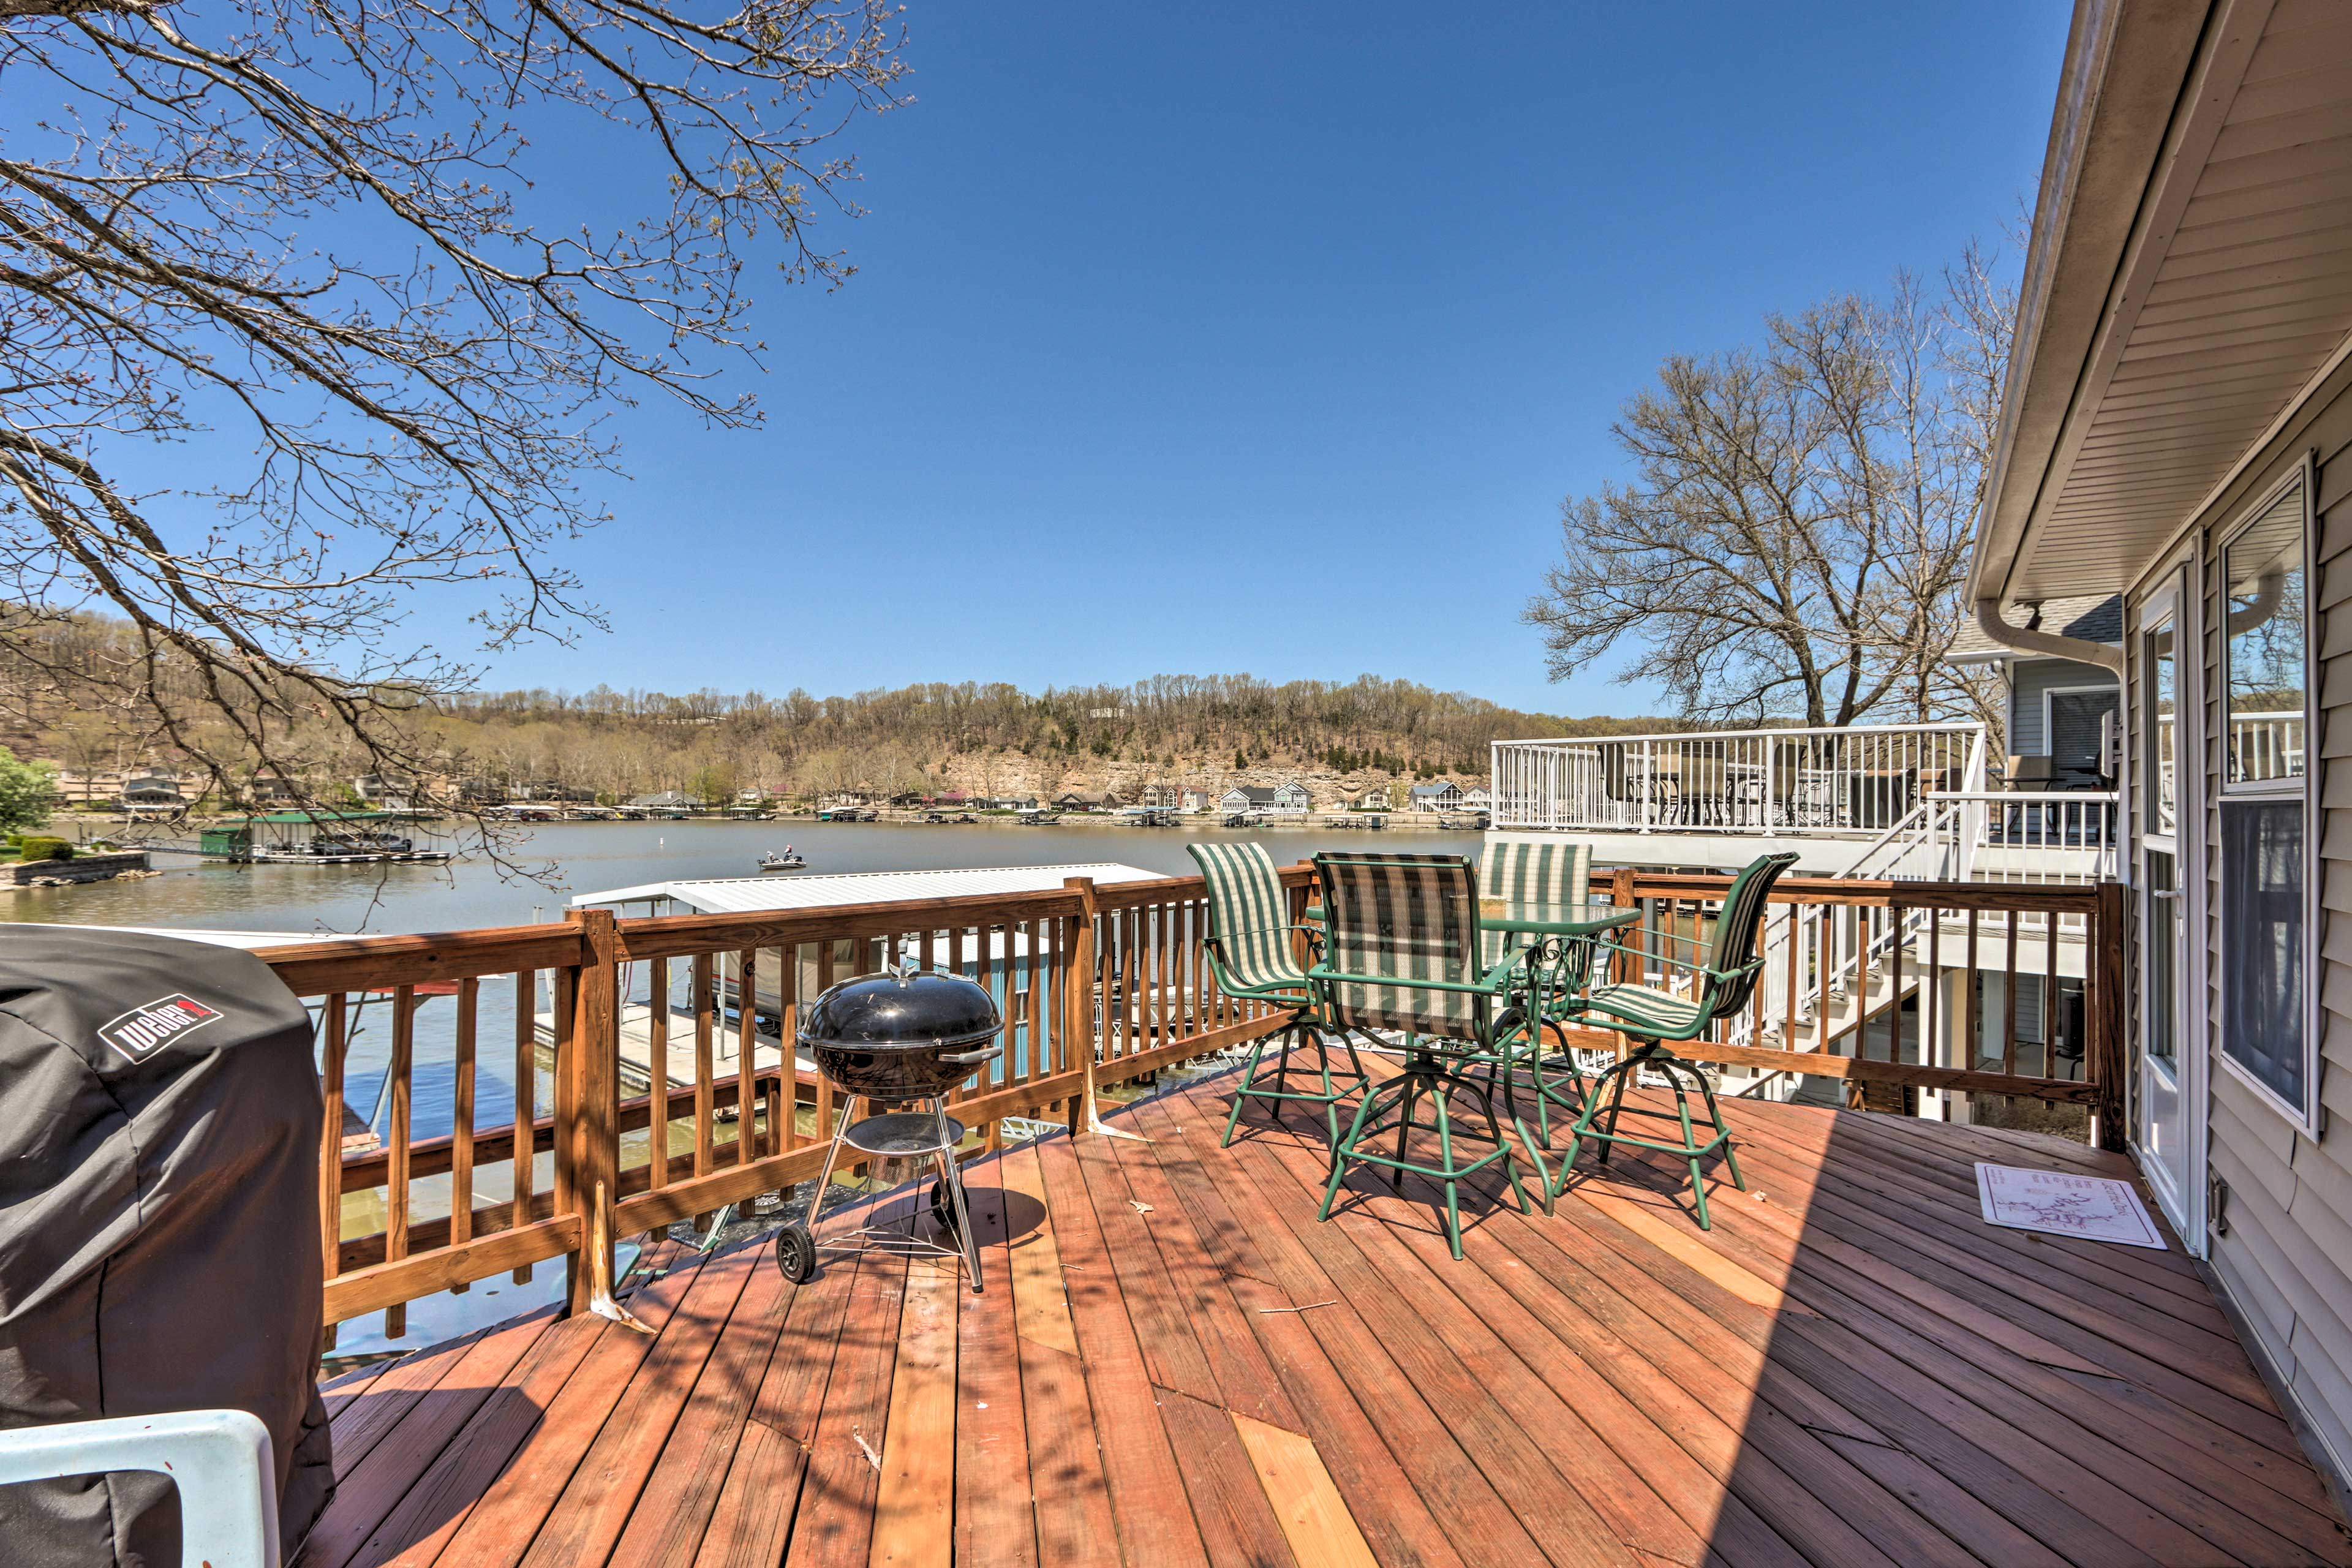 Outdoor Space | Double Deck | Ample Seating | Fire Pit